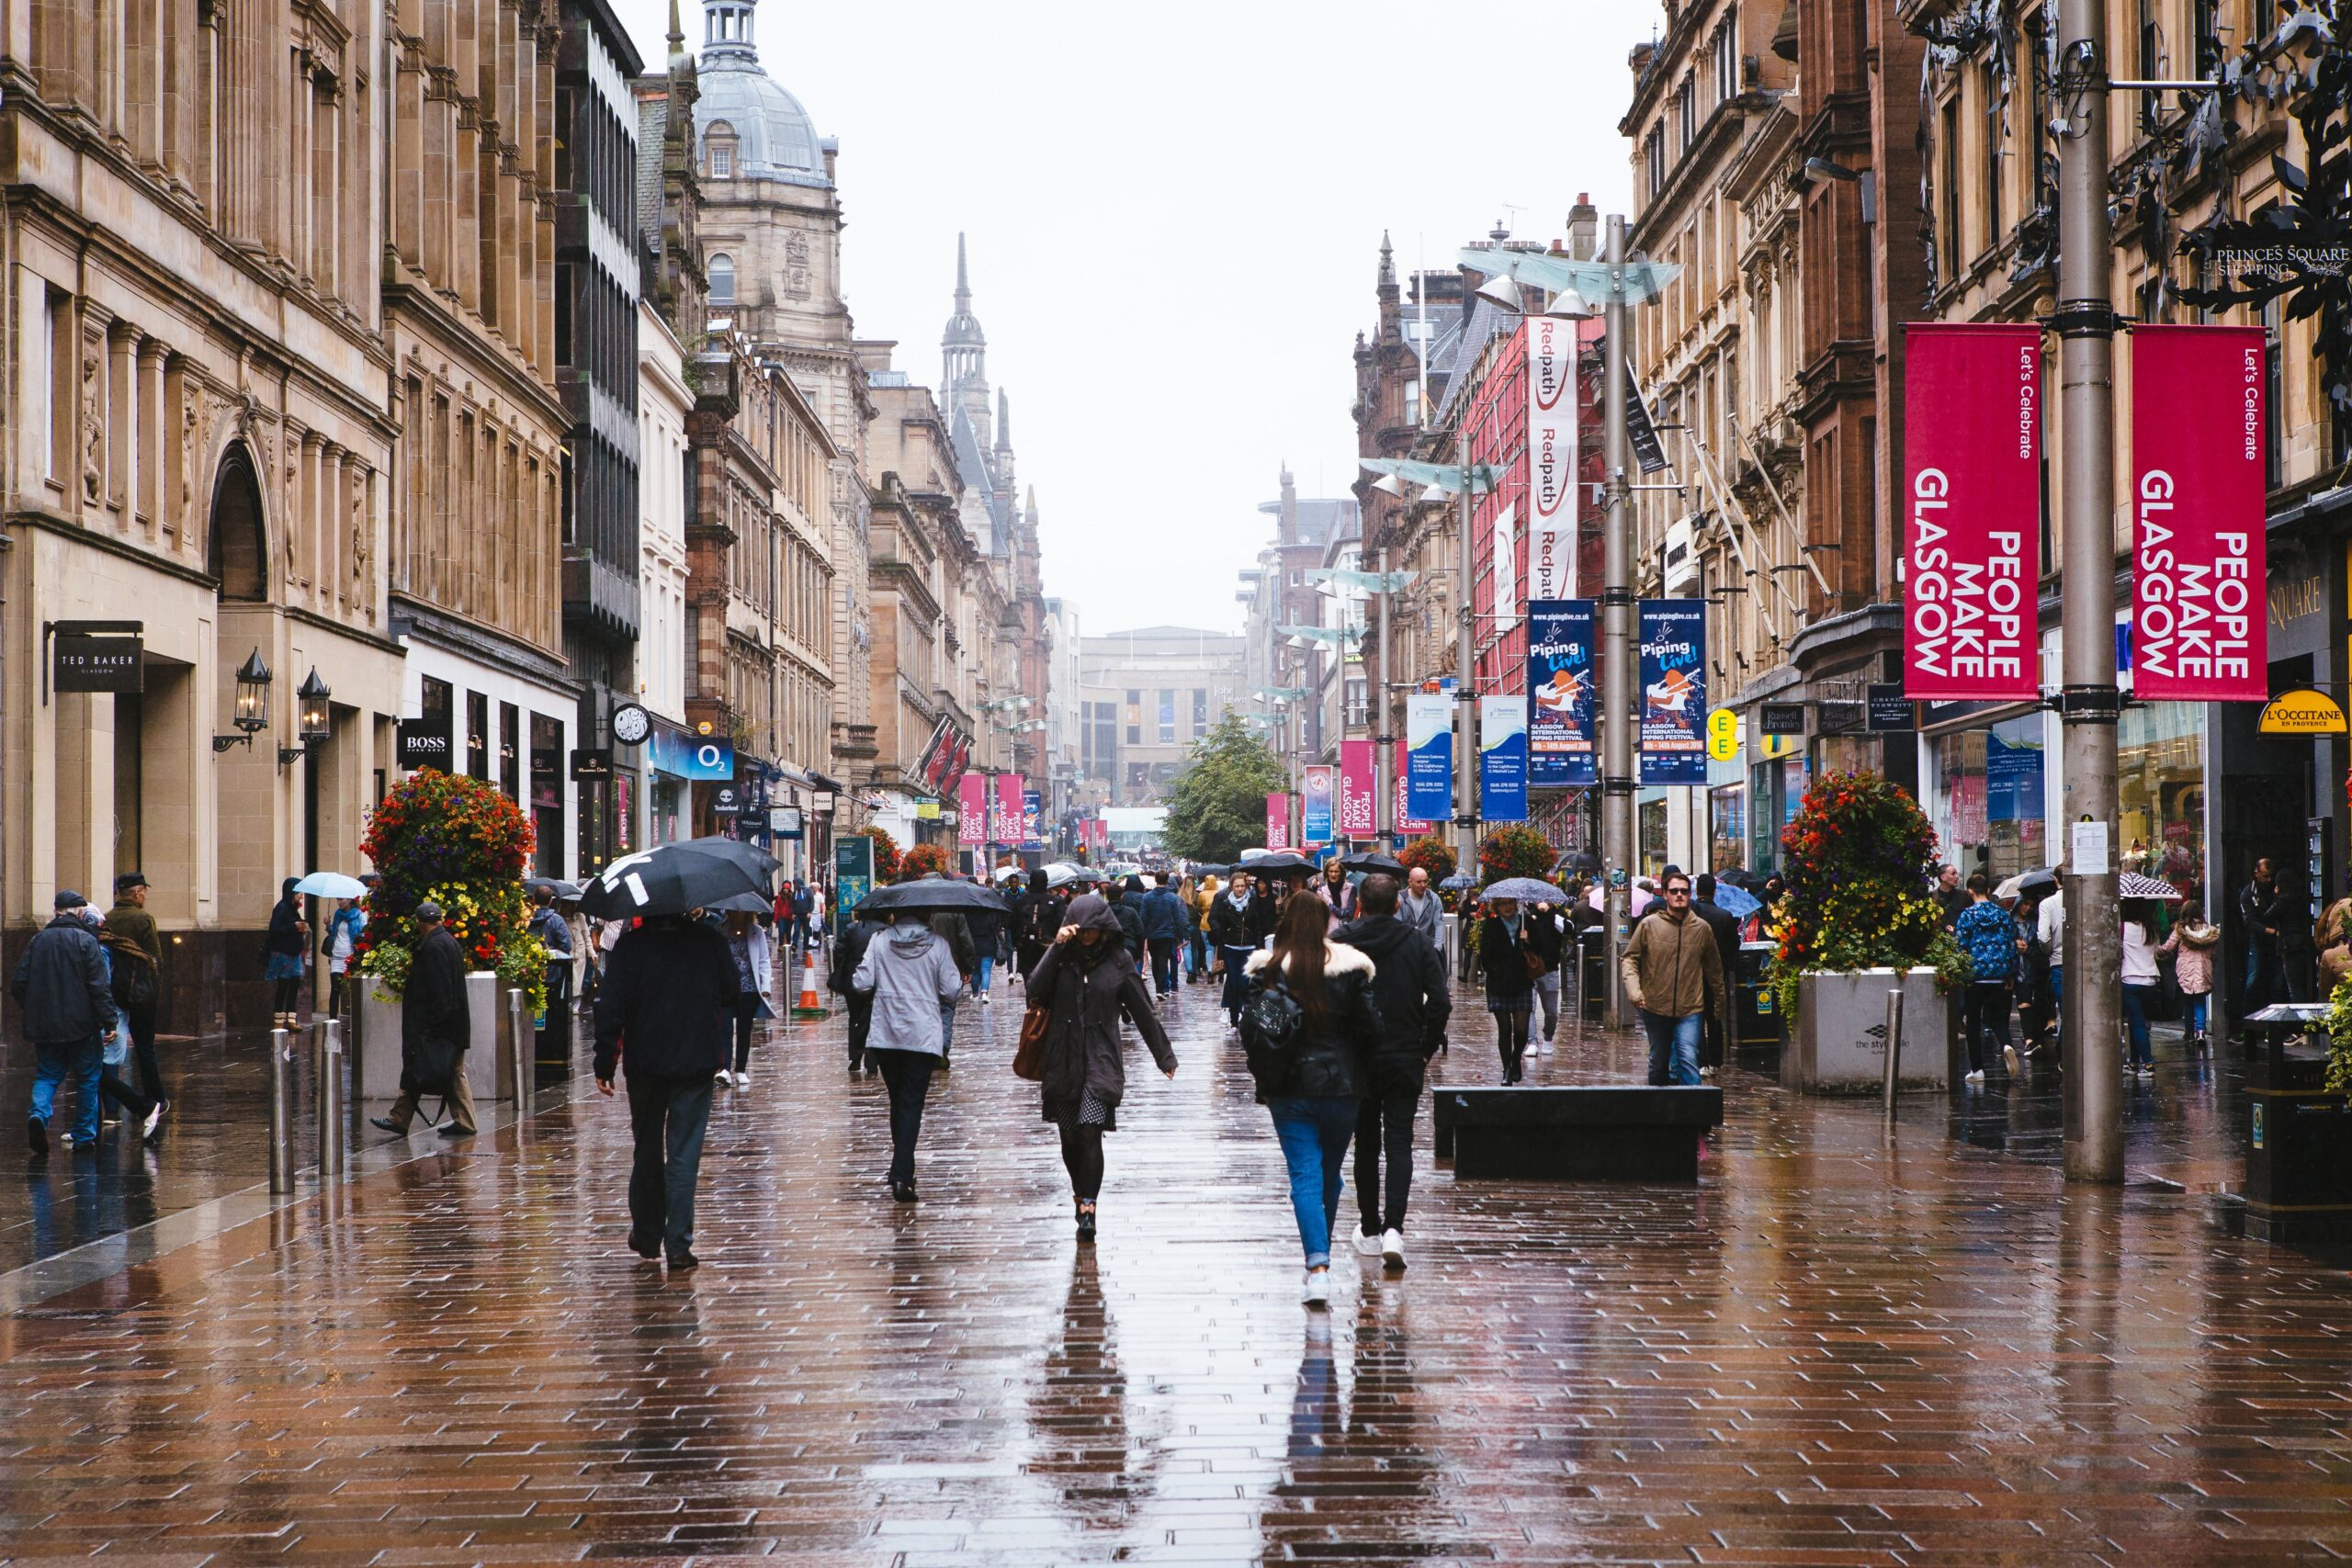 Repurposing Our High-Streets